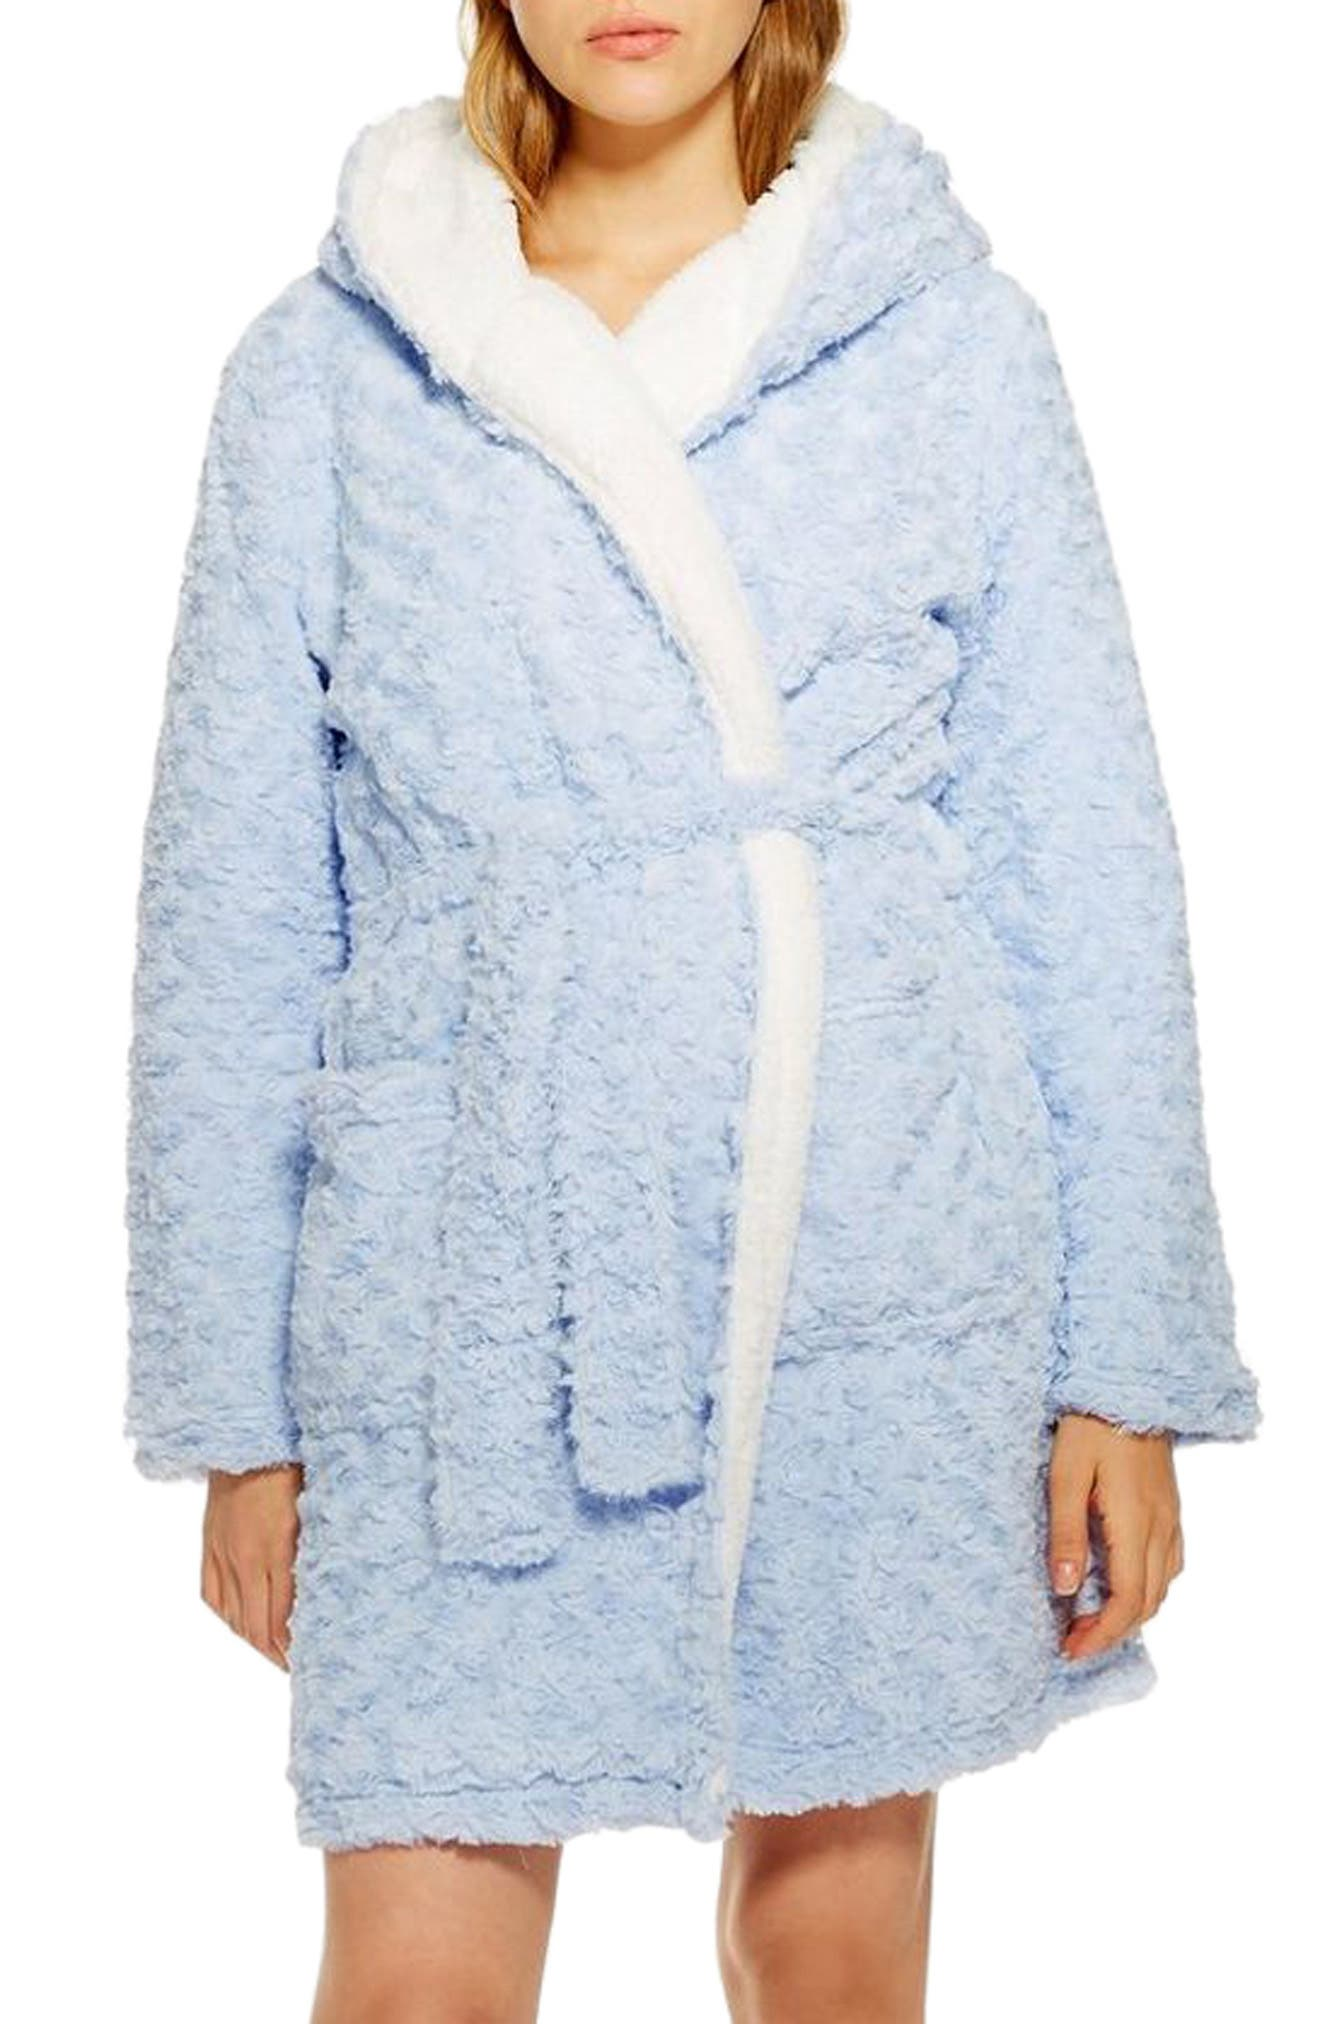 Fluffy Faux Fur Hooded Robe,                             Main thumbnail 1, color,                             LIGHT BLUE